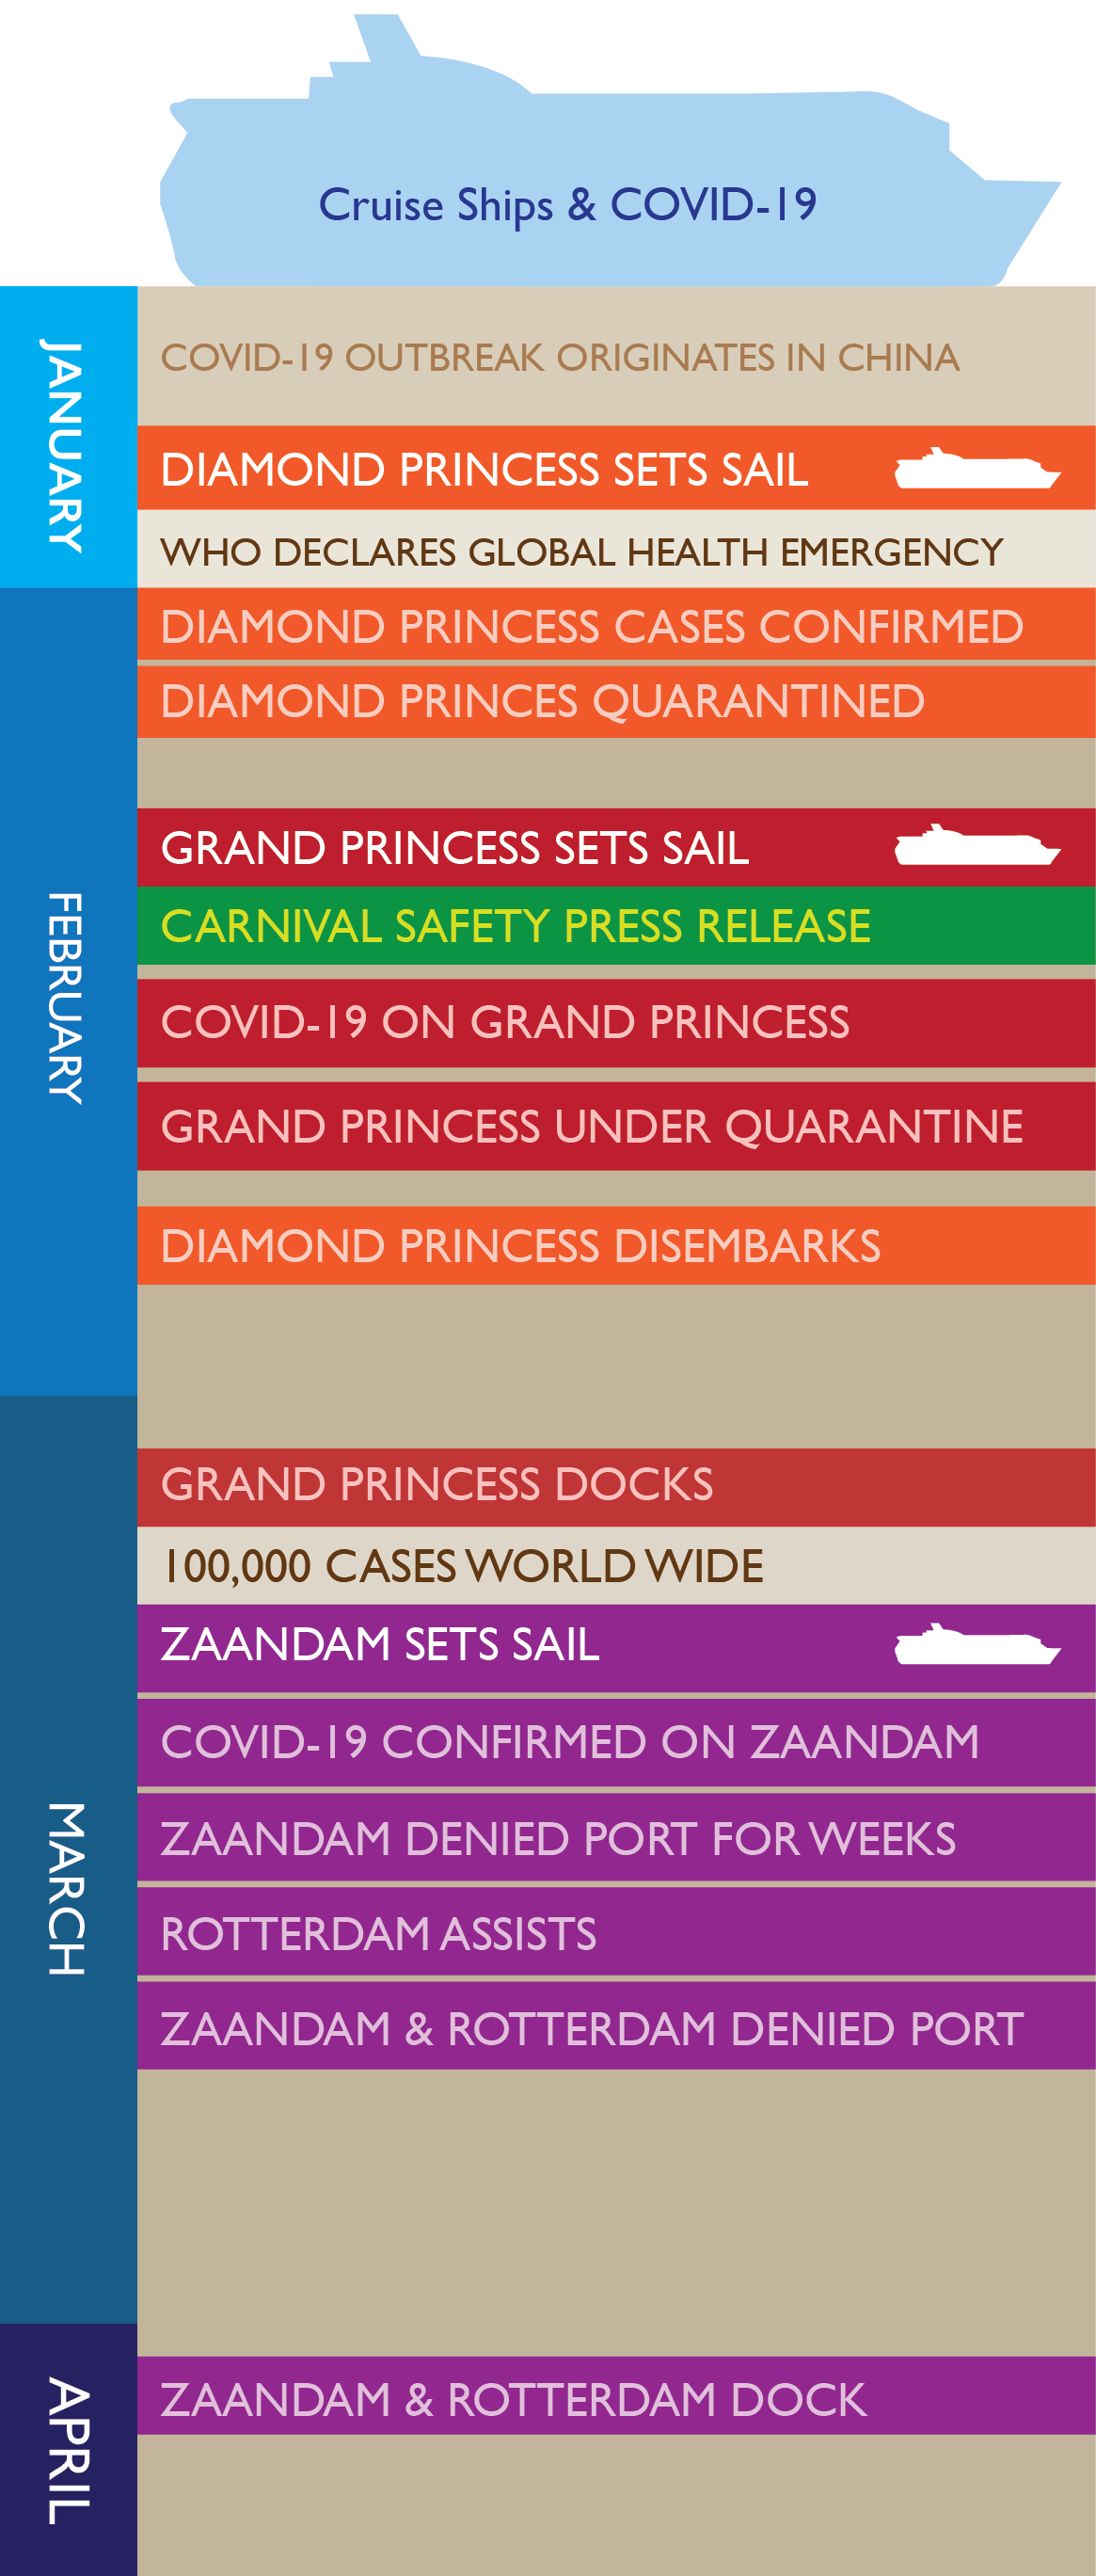 Cruise Line Liability In COVID-19 Pandemic